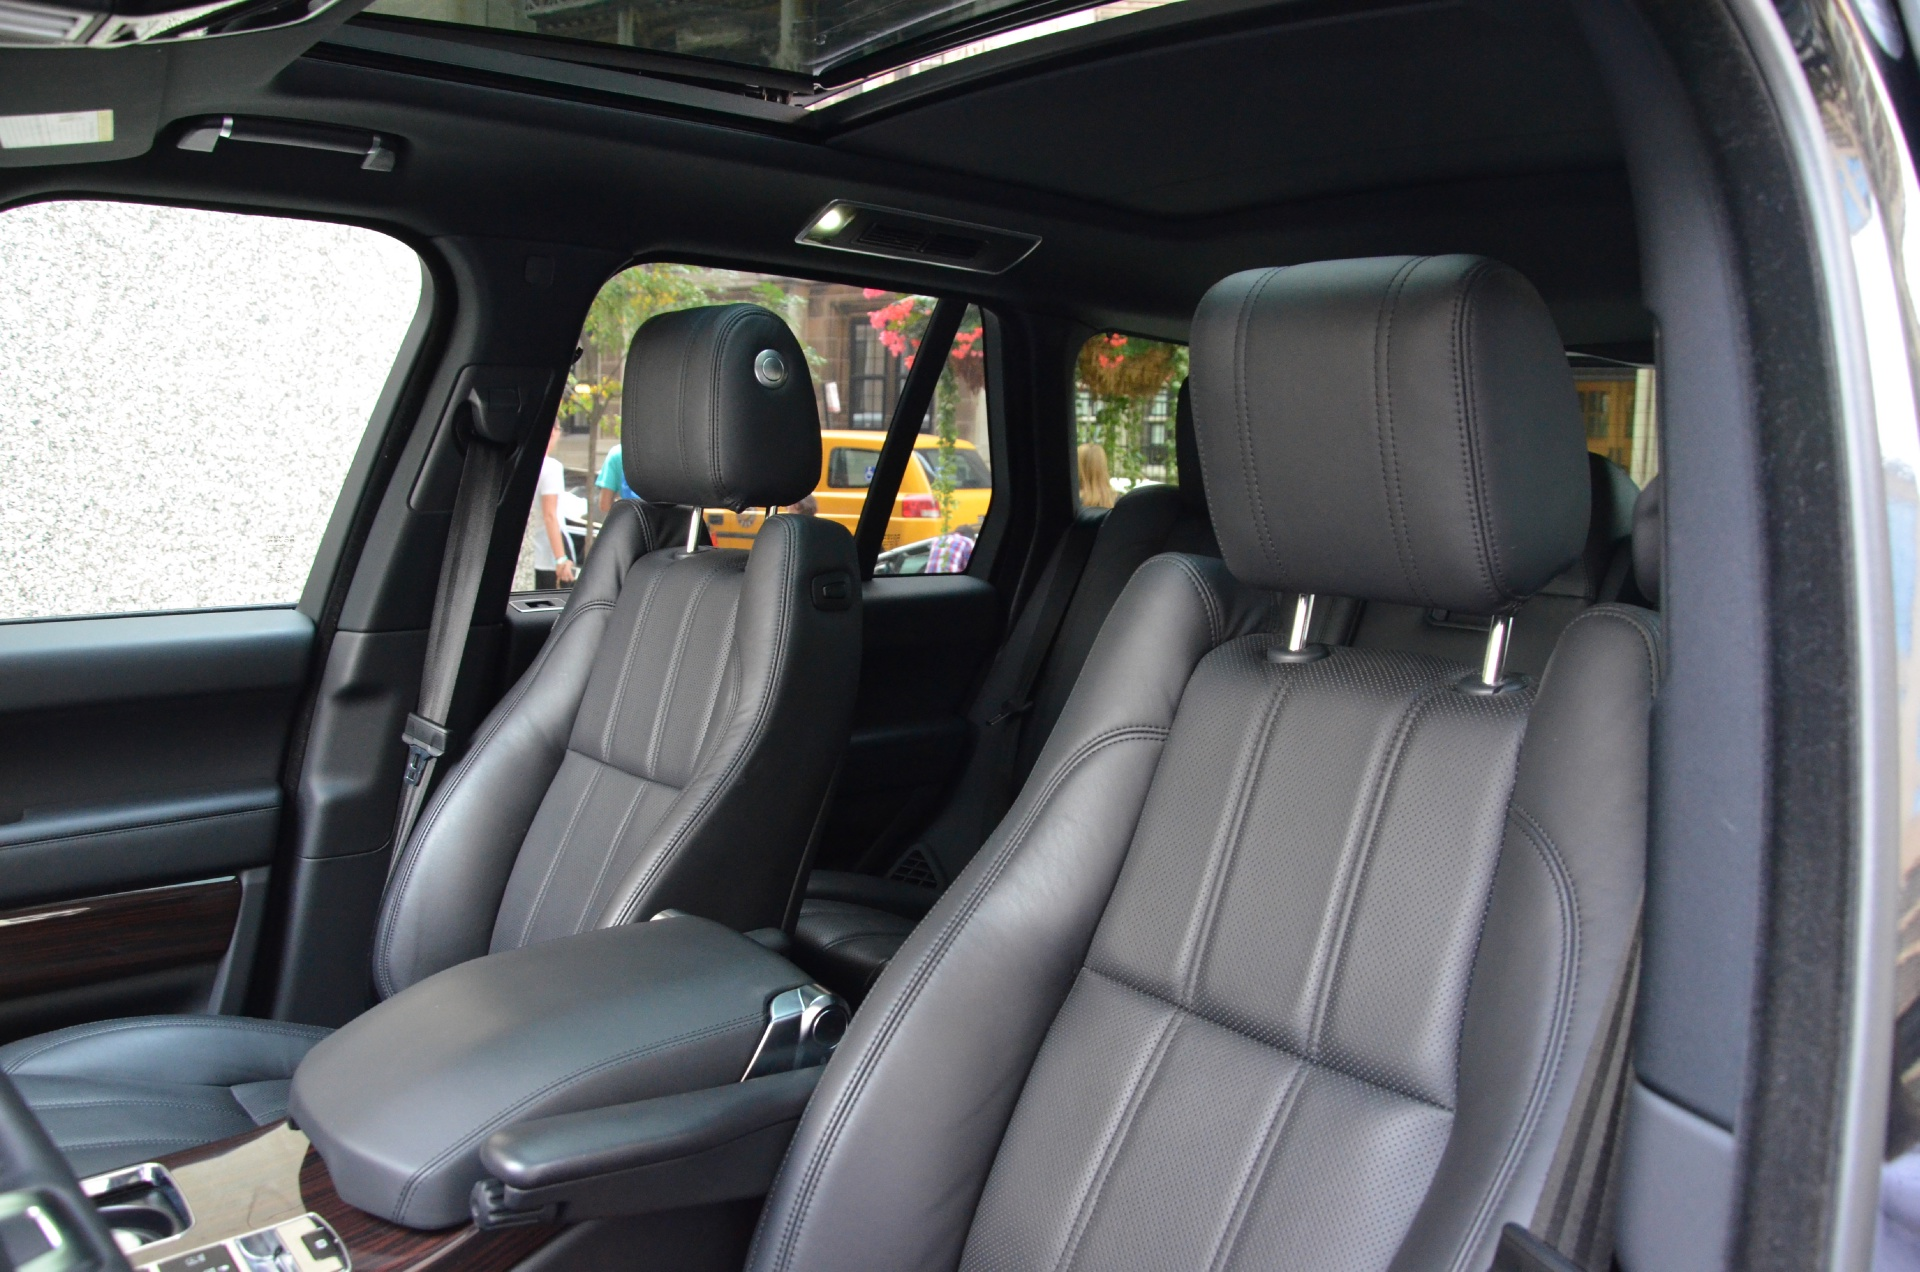 2013 Land Rover Range Rover Supercharged Stock GC1504 for sale